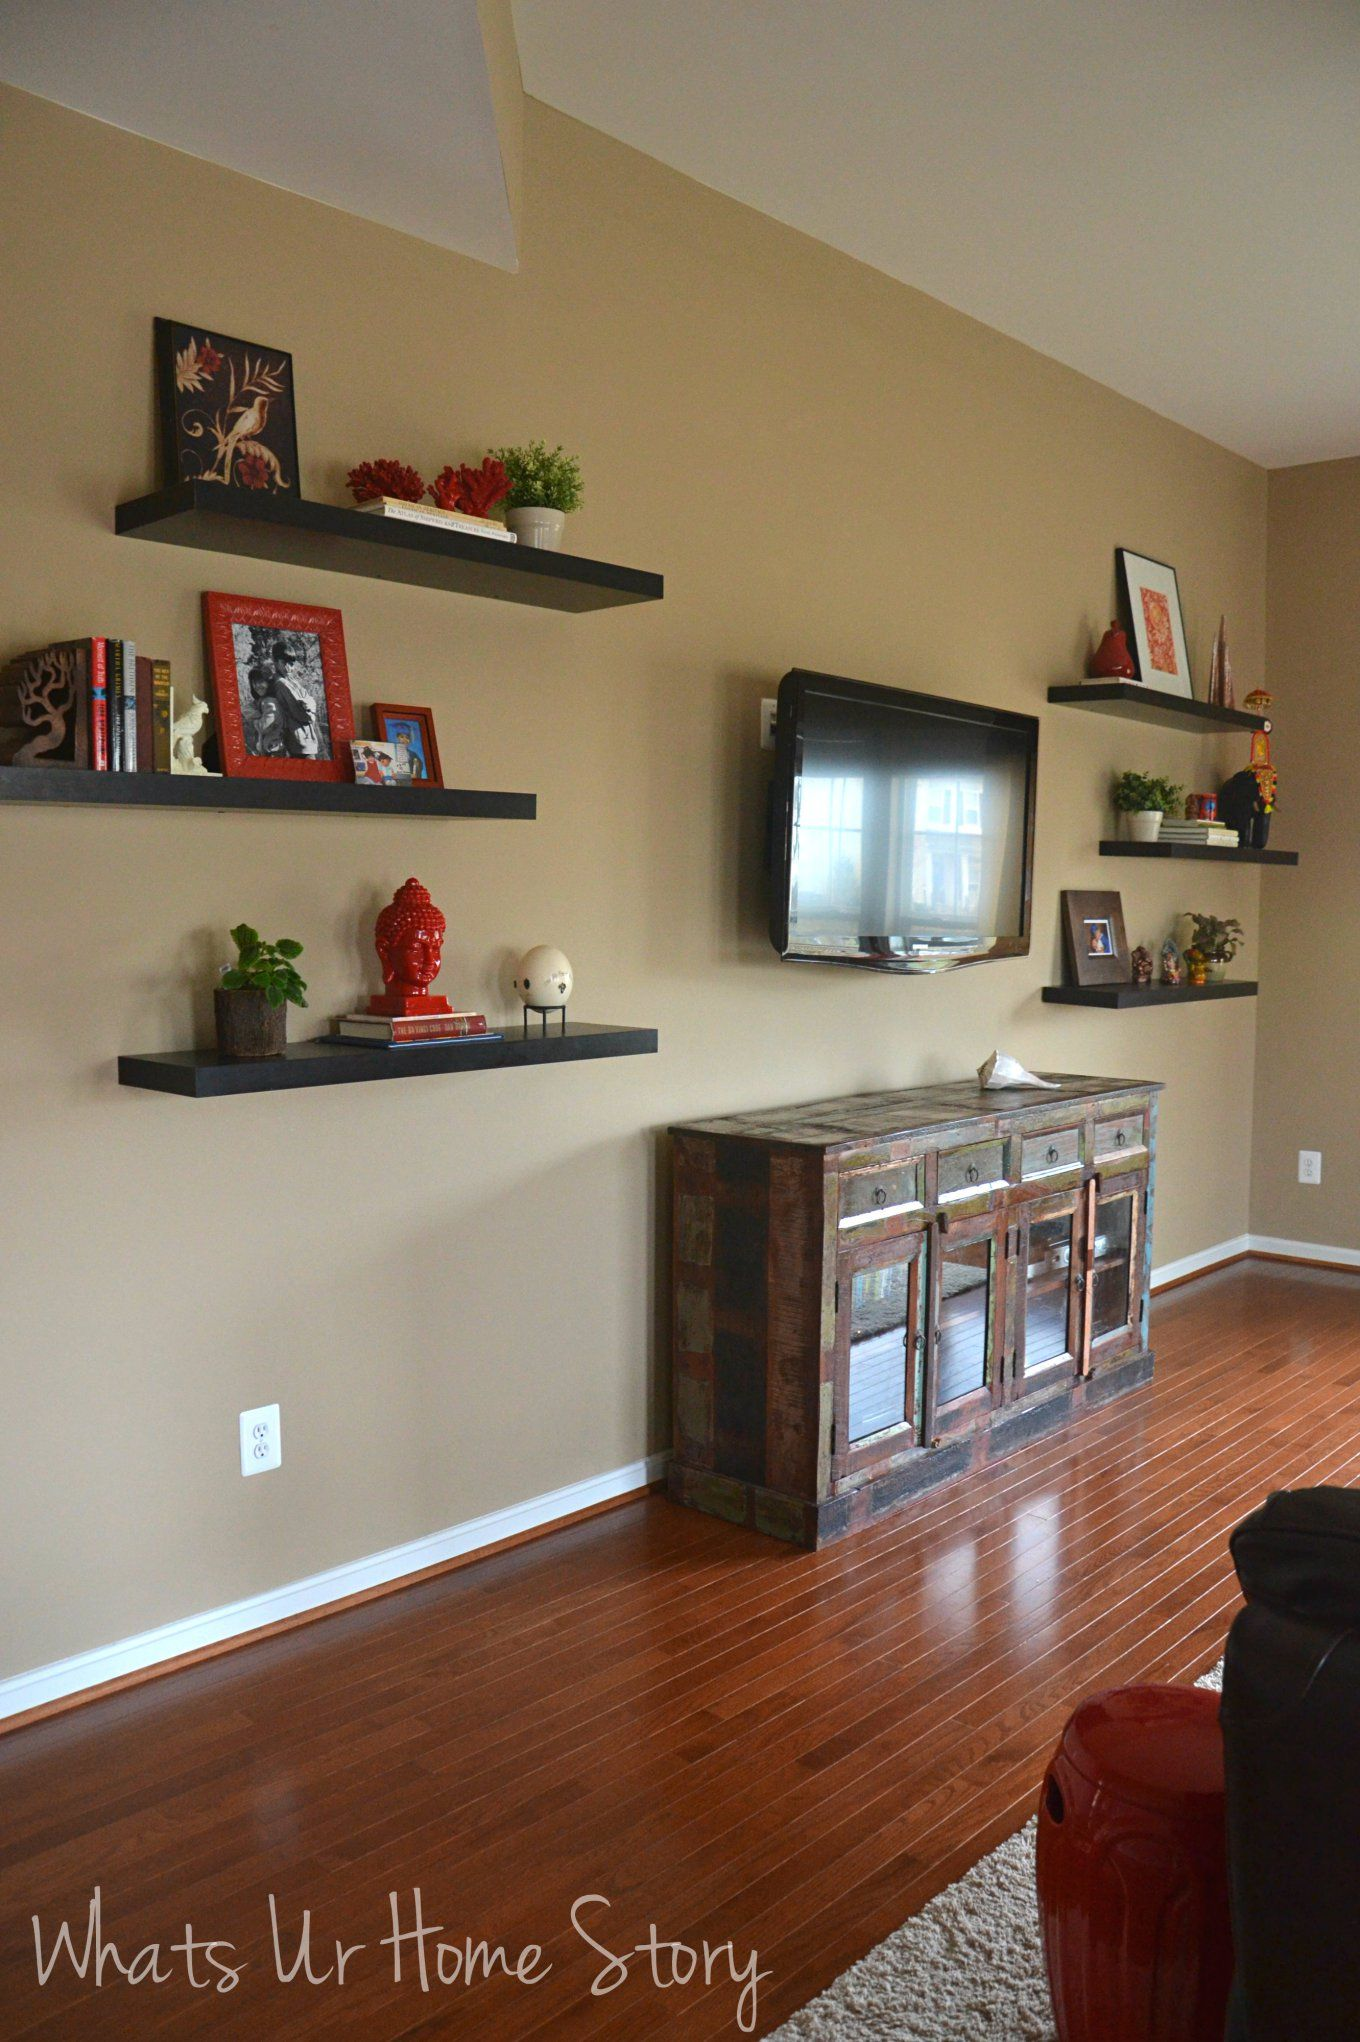 How To Decorate Around A Tv With Floating Shelves Floating Shelves Living Room Decor Around Tv Shelves Around Tv